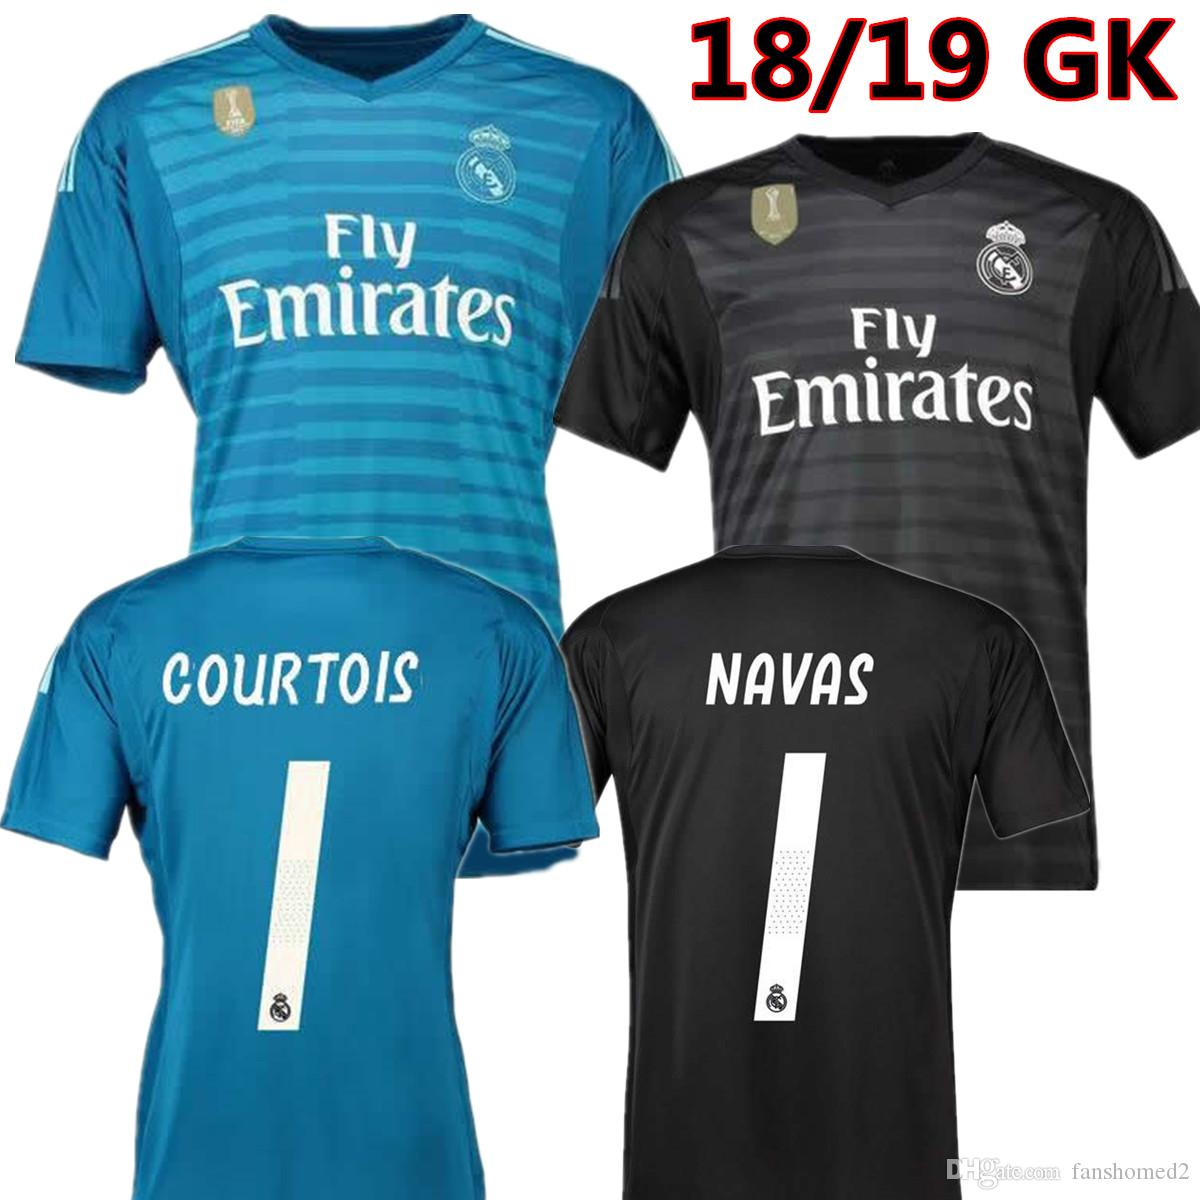 88043a51a128a 2018 2019 Real Madrid Goalkeeper Jerseys 18 19 Keylor Navas Jersey Camiseta  Portero 25 Thibaut Courtois 1 Real Madrid BALE Maillot De Foot Por  Fanshomed2